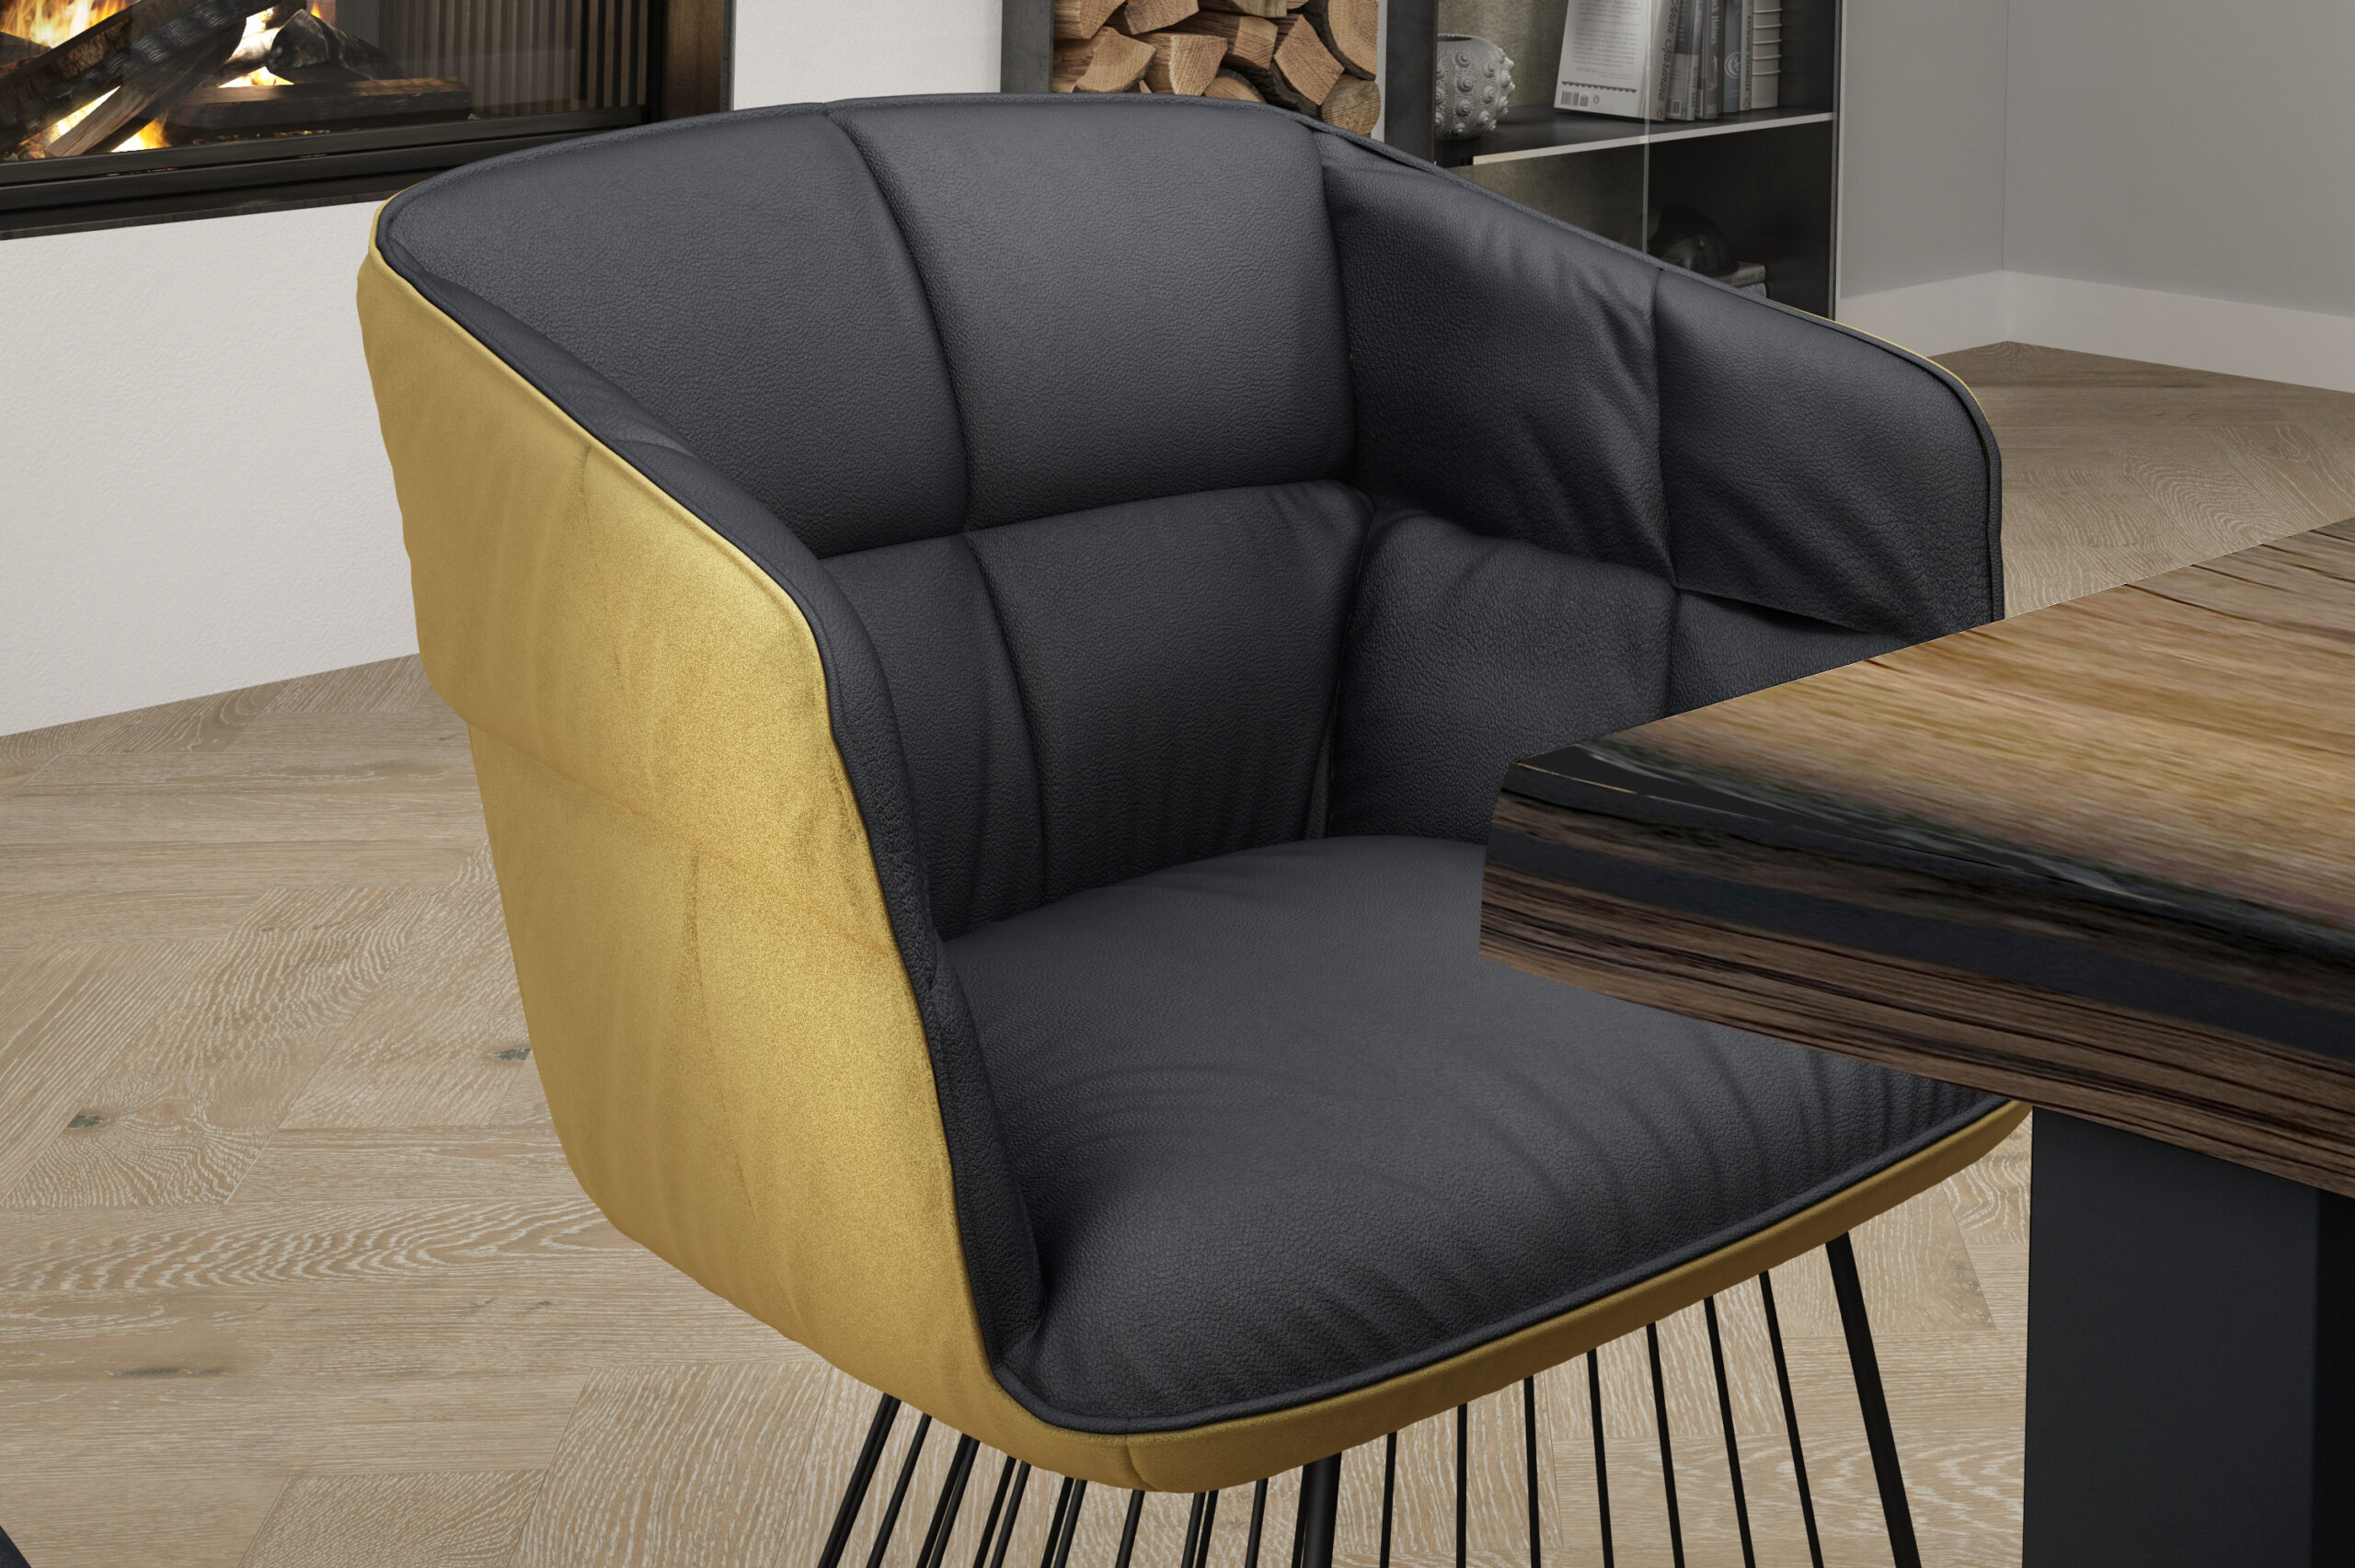 chair-zoom